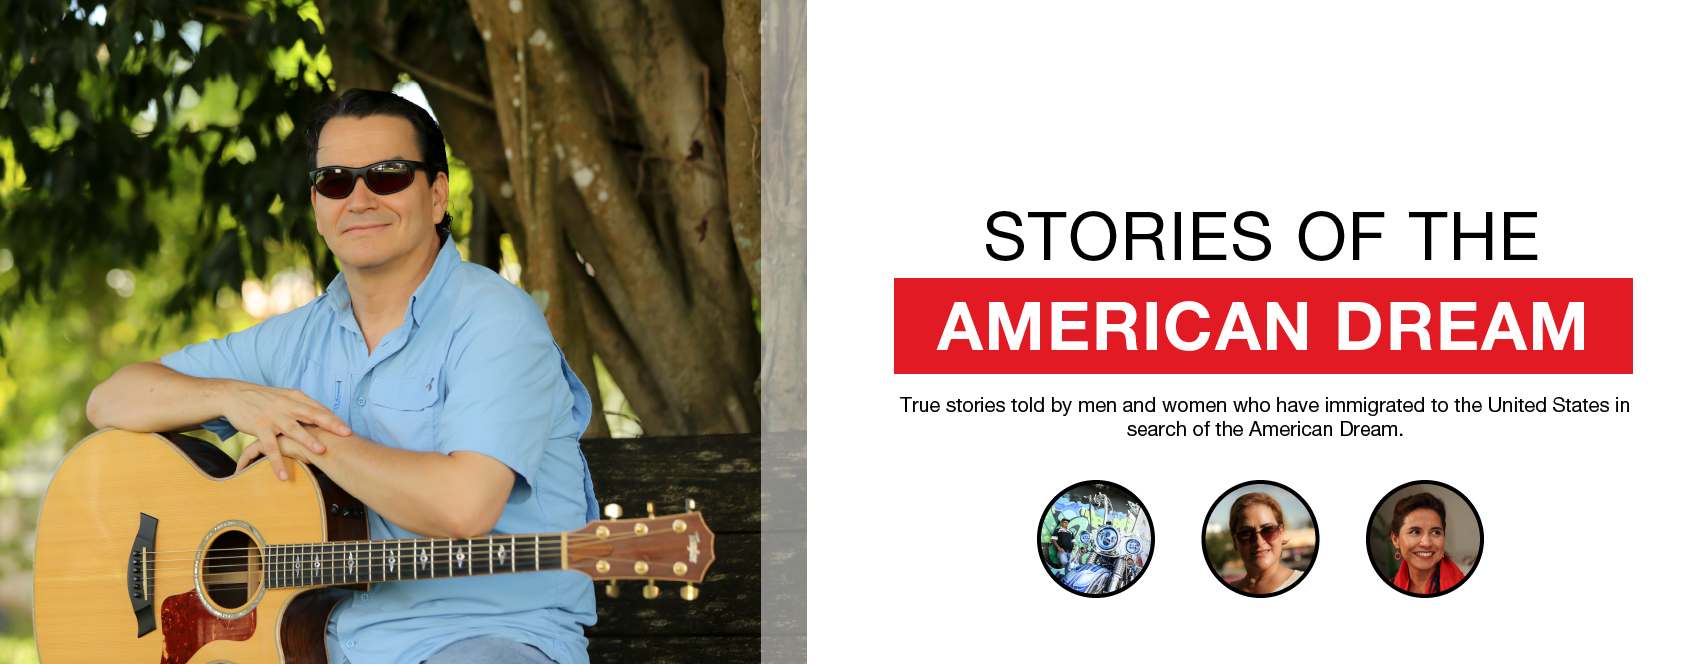 Stories of the American Dream